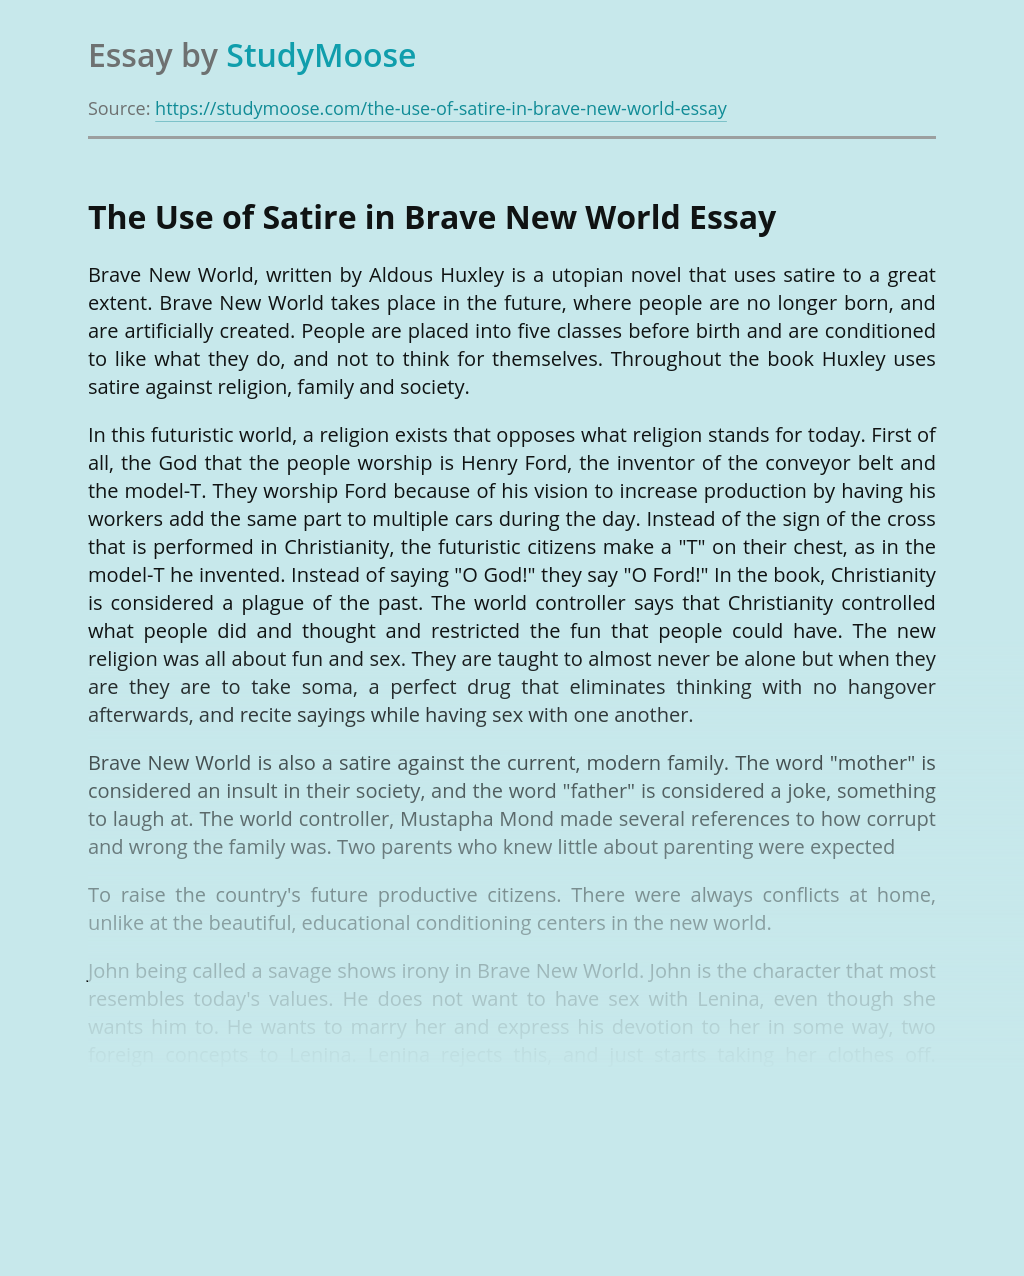 The Use of Satire in Brave New World